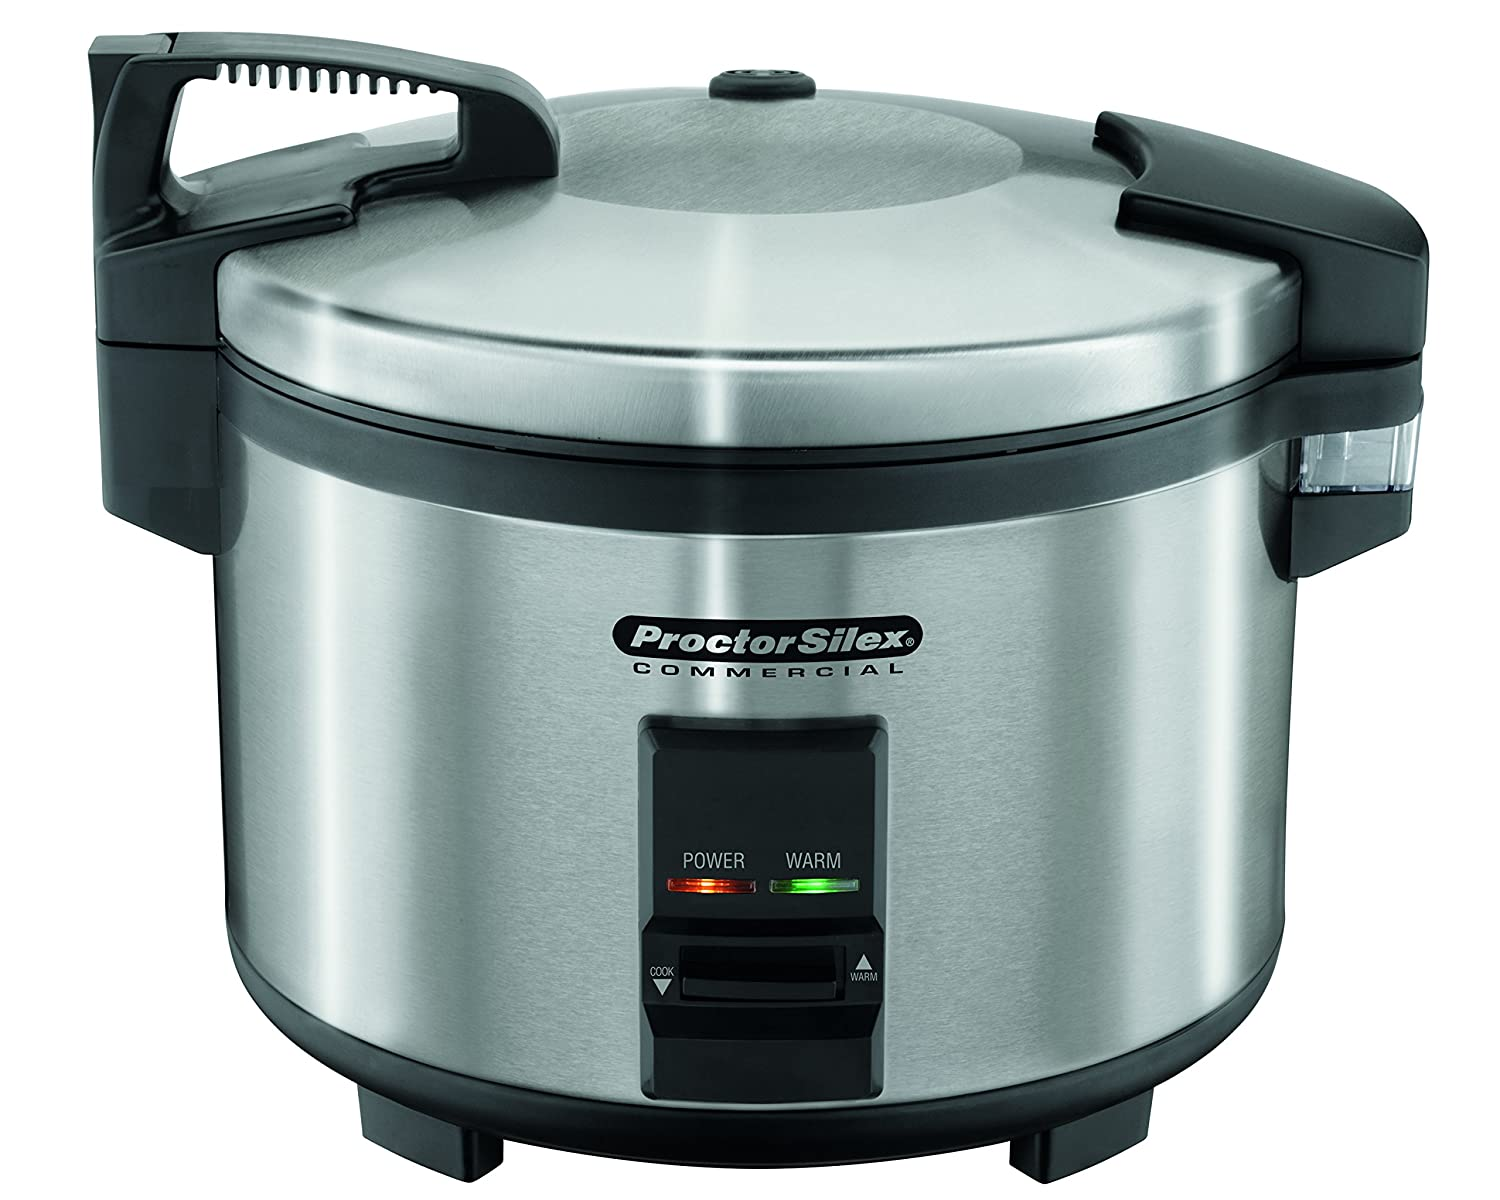 Proctor Silex Commercial Rice Cooker Warmer